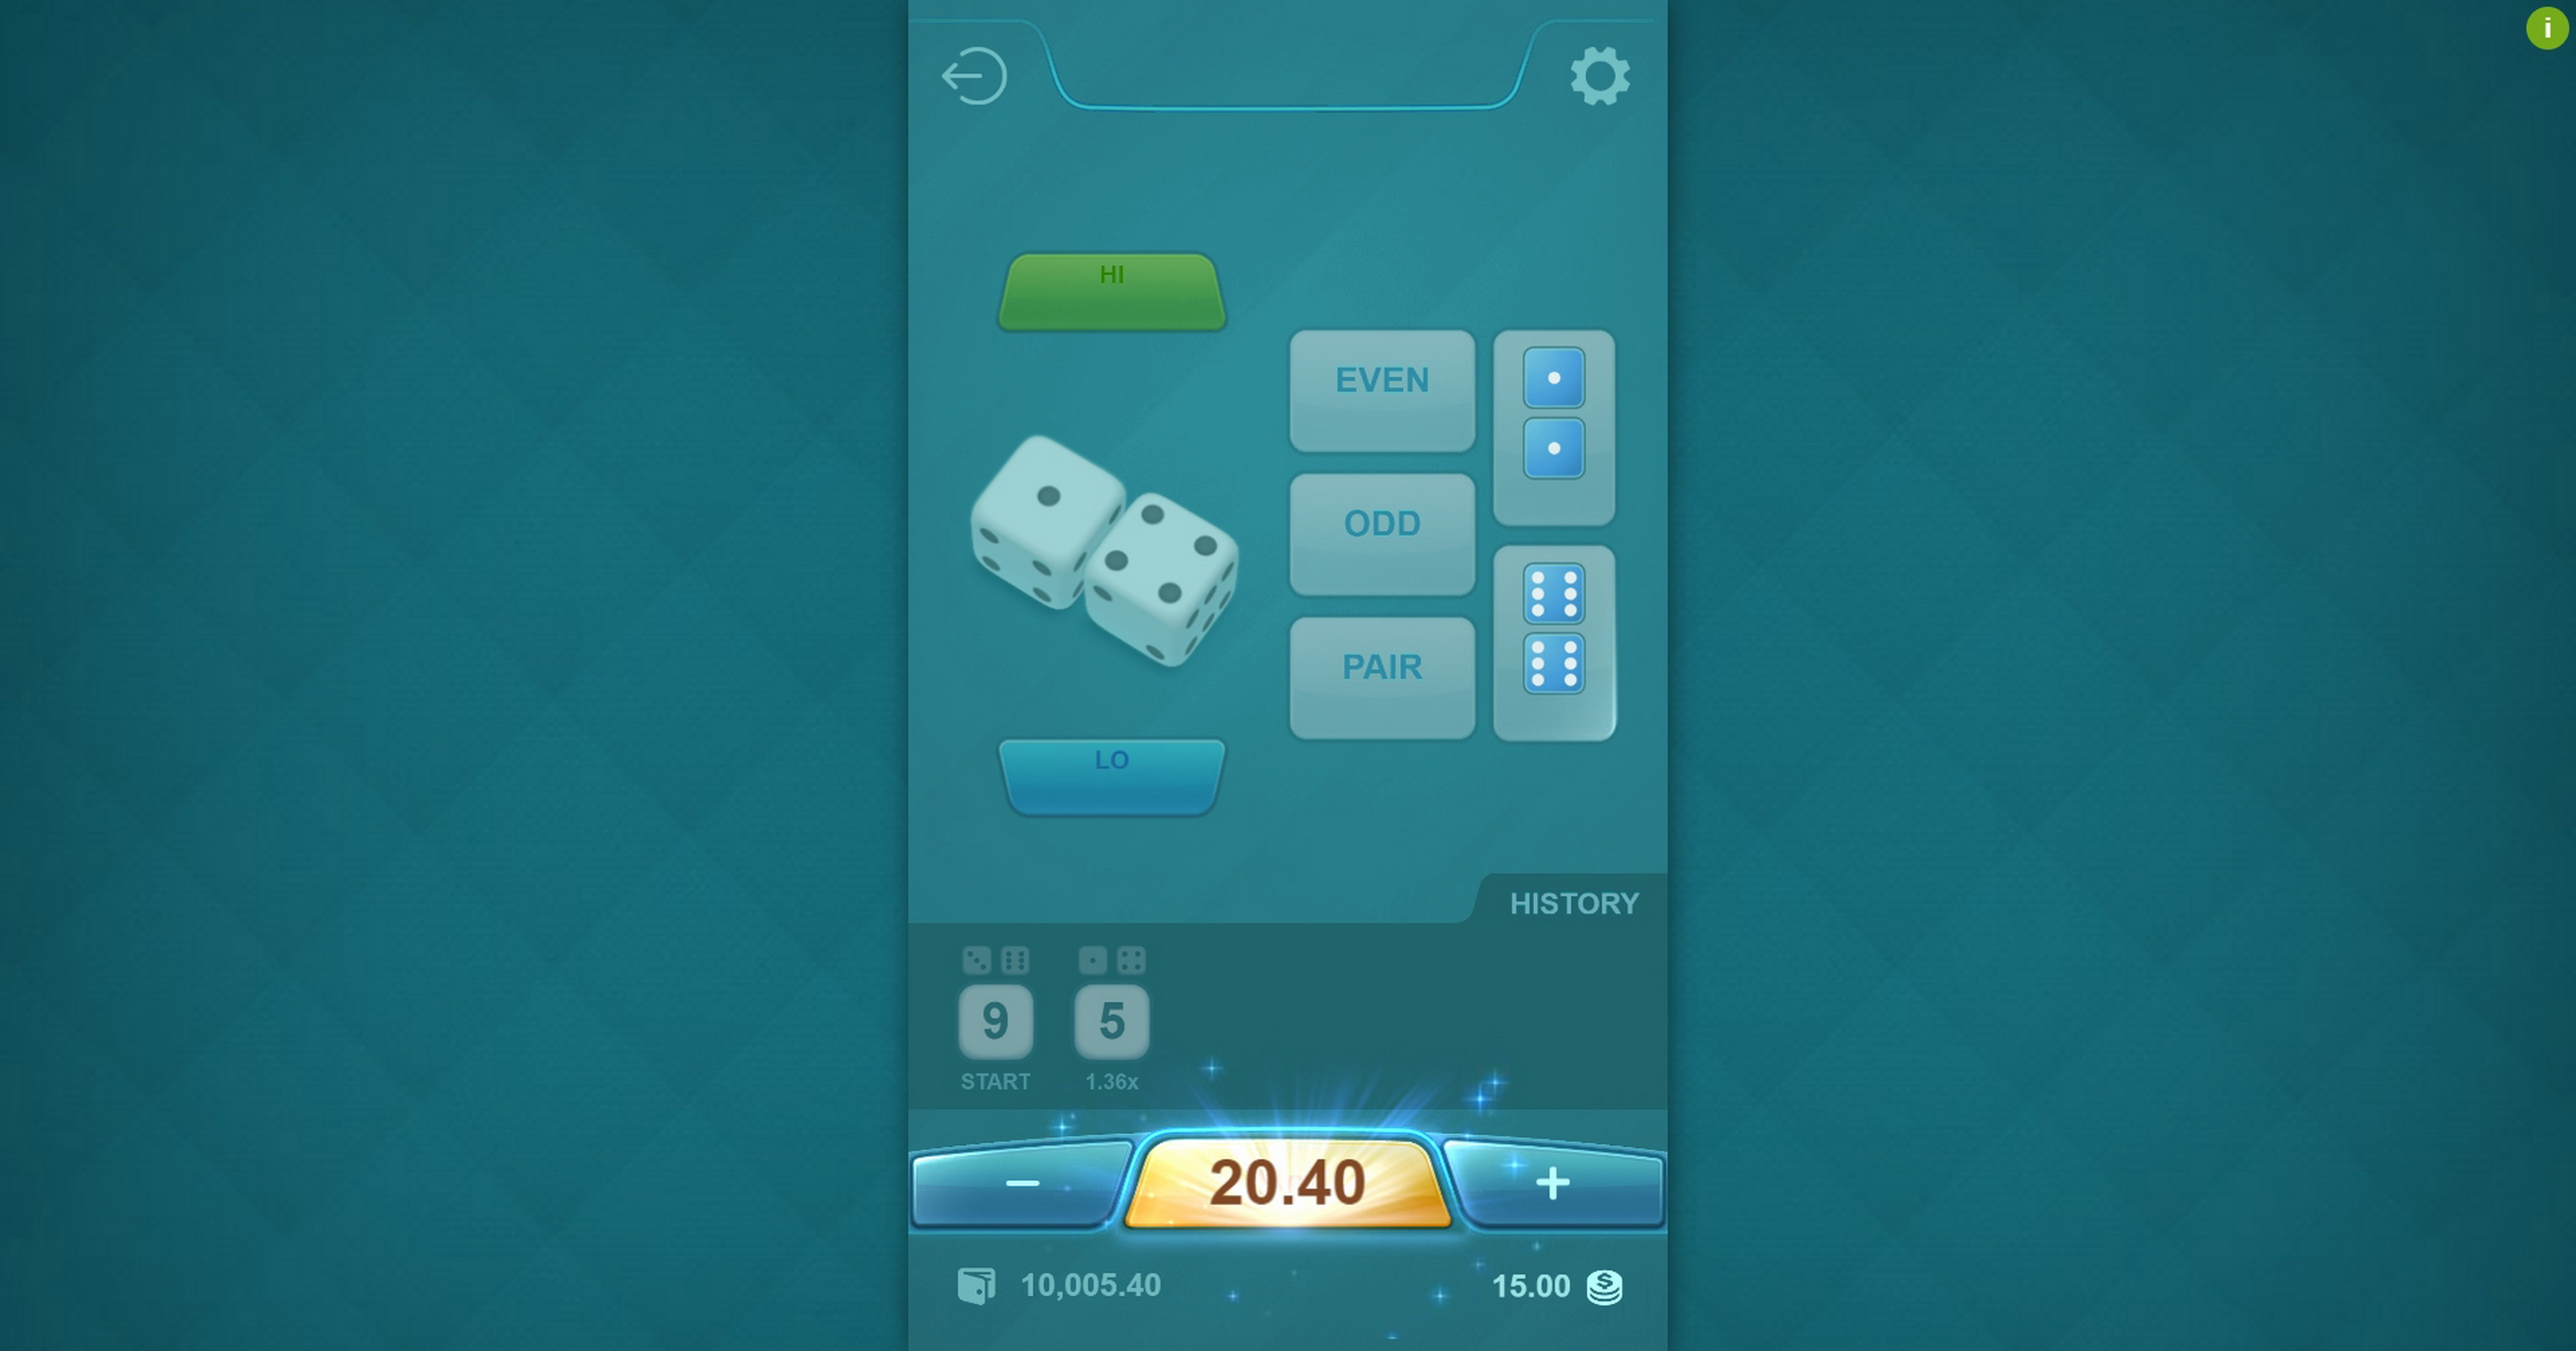 Win Money in Dice Hi Lo (PG Soft) Free Slot Game by PG Soft